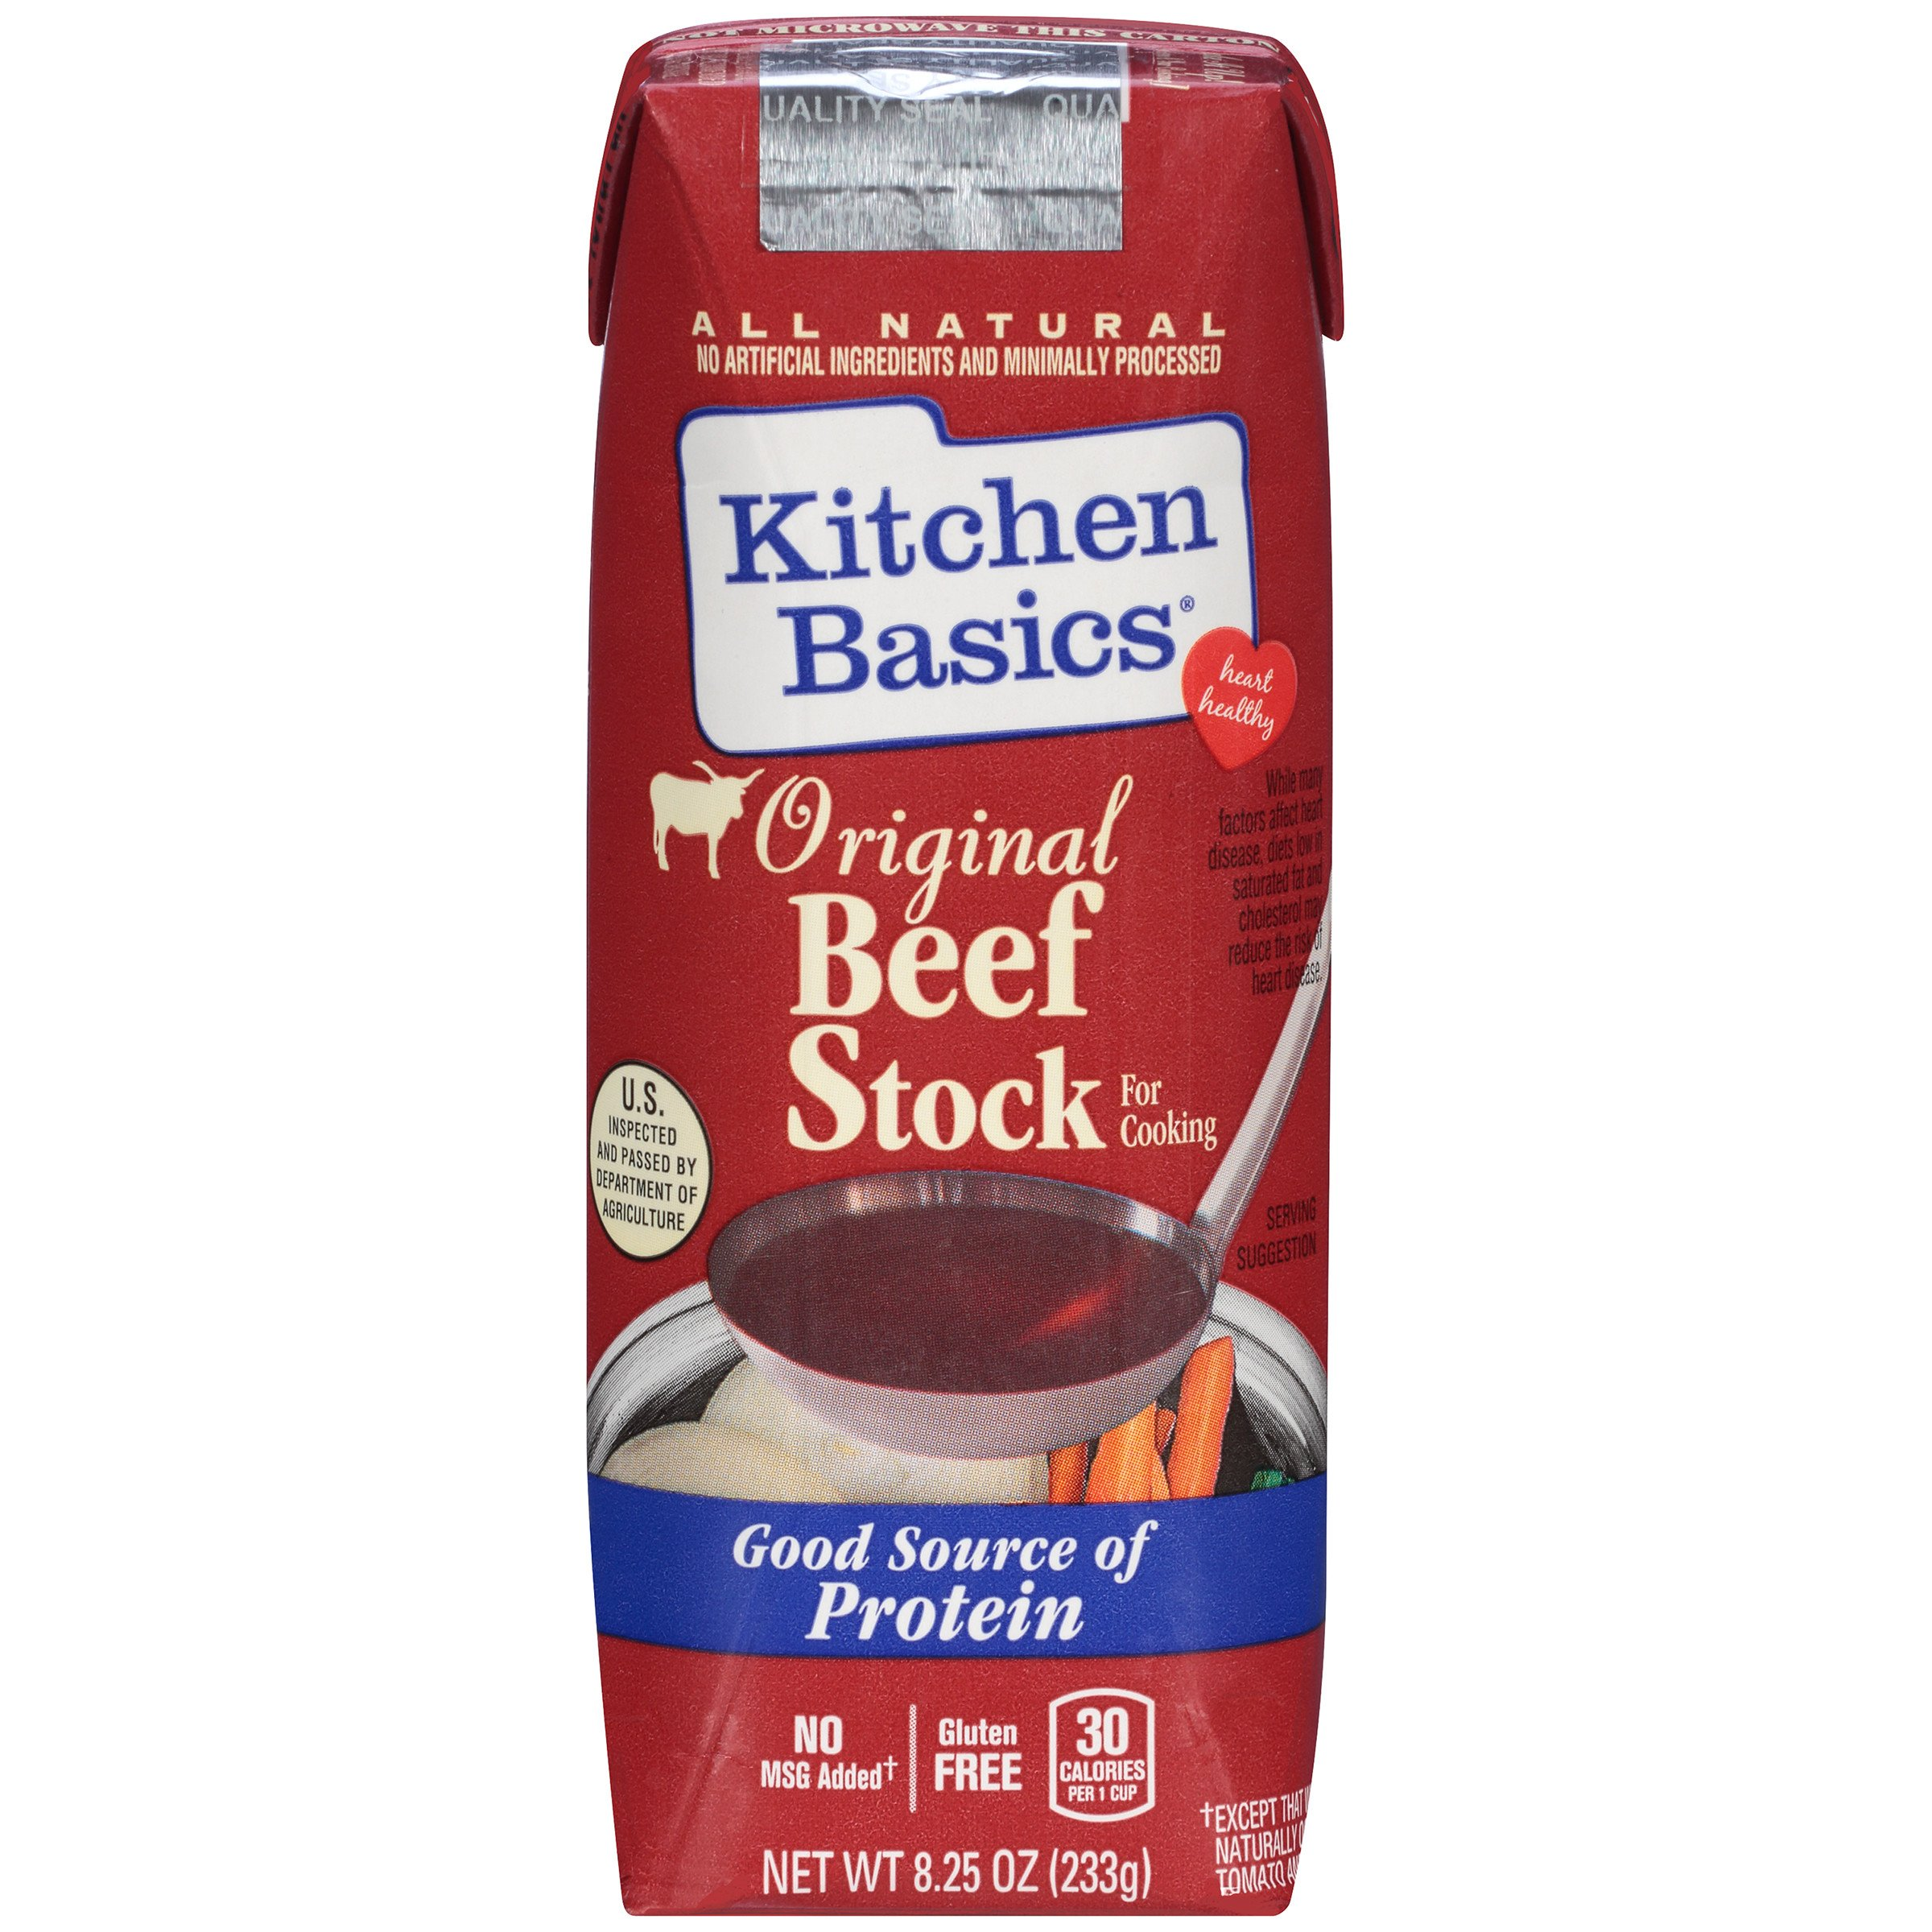 Kitchen Basics All Natural Original Beef Stock, 8.25 fl oz (Pack of 12)